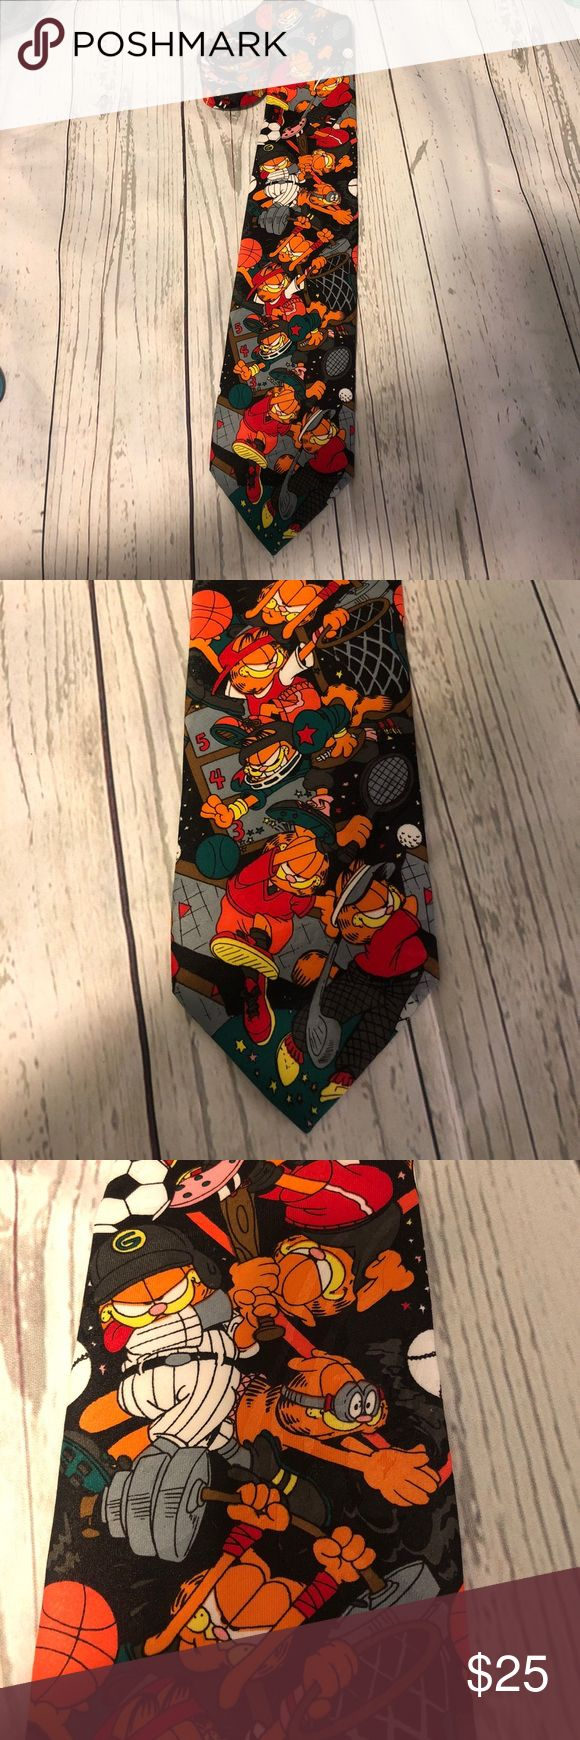 "Garfield Cartoon Sports Neck Tie Football Basket Garfield Cartoon Sports Neck Tie Football Basket  Great condition  Measures 57 ""  1112 2 30 Hot cakes Accessories Ties"